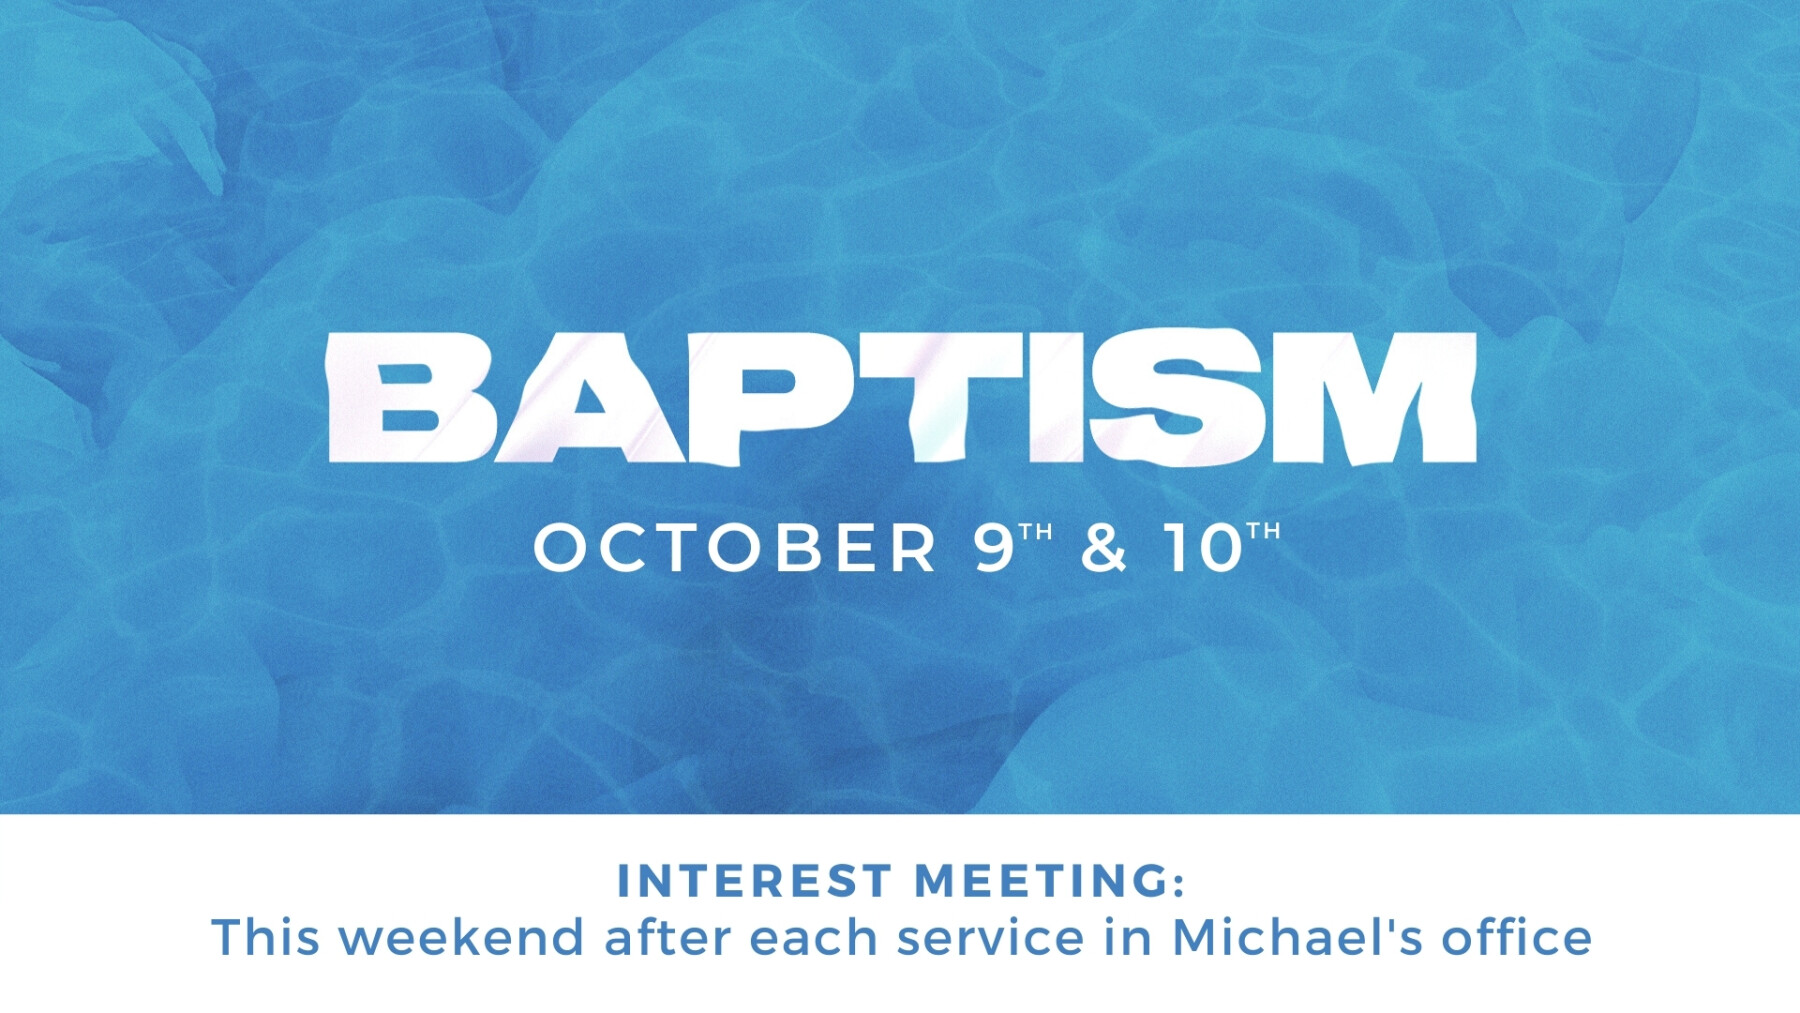 Baptism - October 9th & 10th